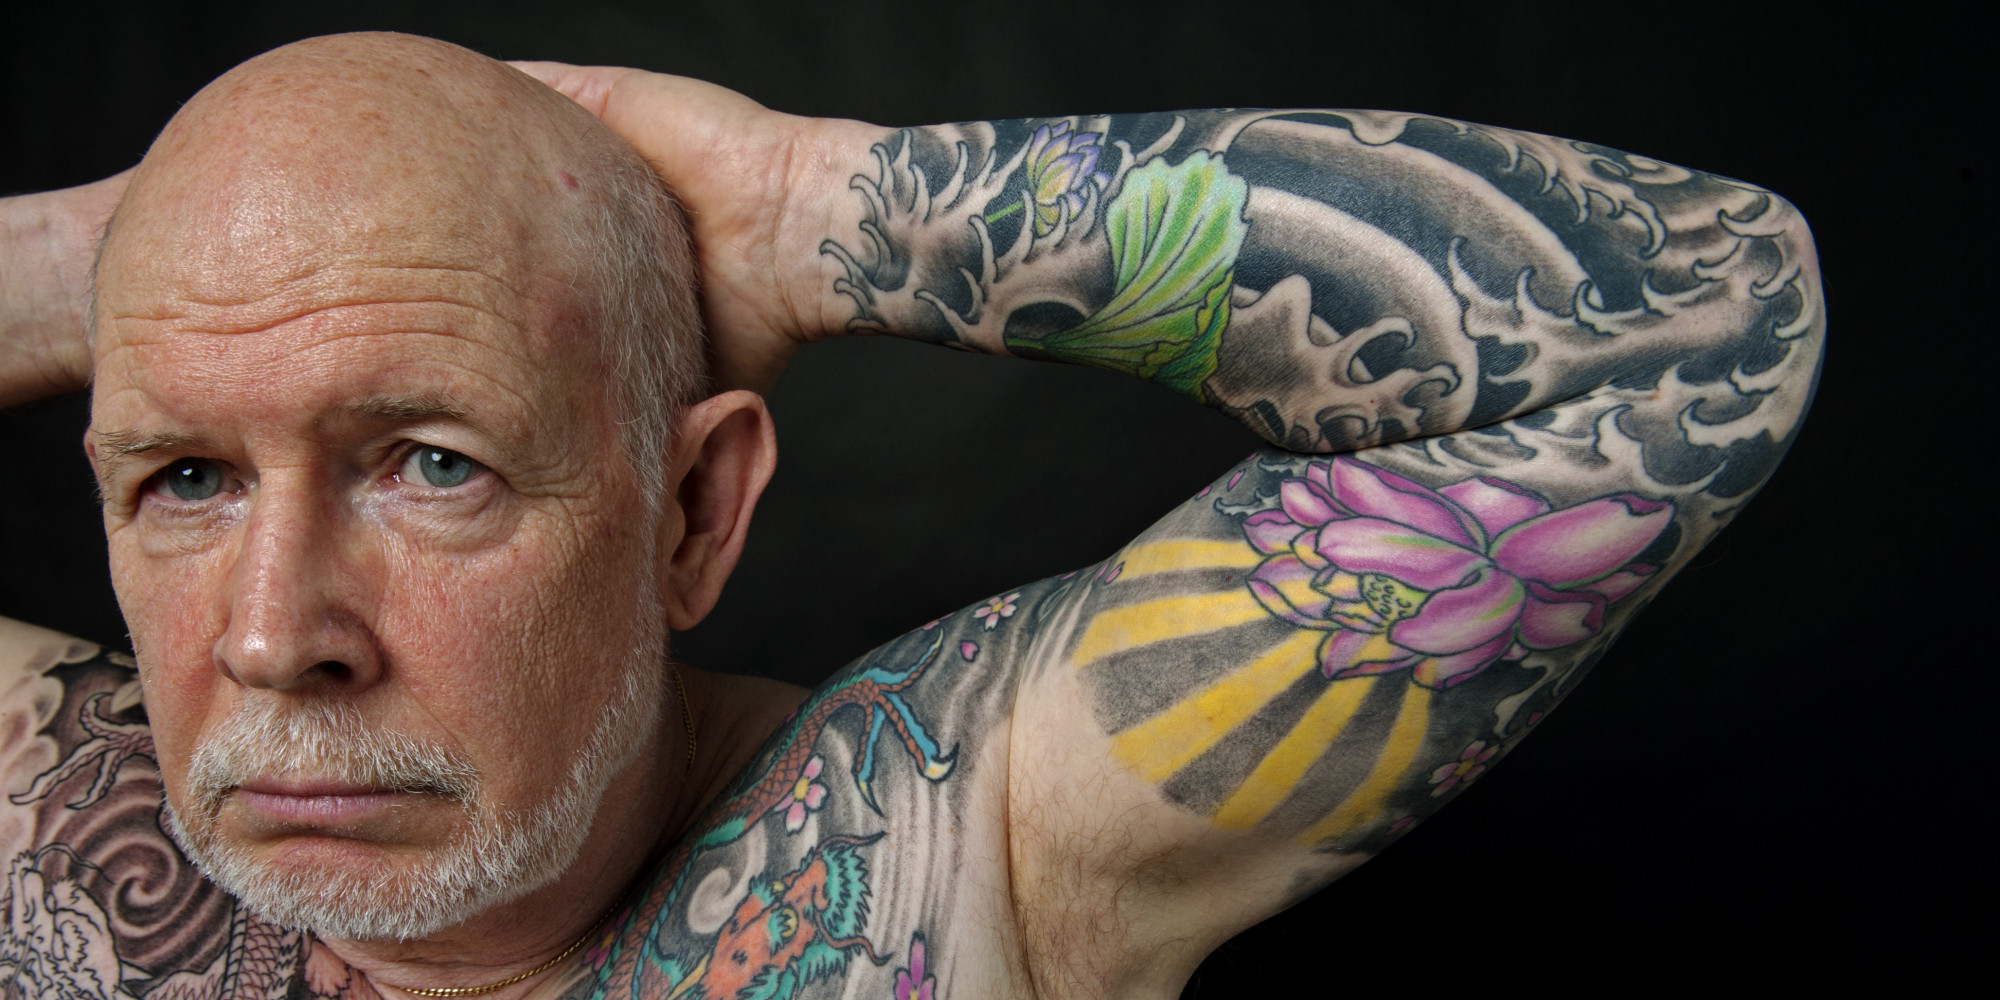 WASHINGTON, DC - SEPTEMBER 18:  65 year old Dave Forties of Churchville, Md., waited to retire from the Army in 1998 to start getting tattoos. Some of Dave's tattoo inspirations come from collecting 100 year old Japanese porcelain. (Photo by Marlon Correa/The Washington Post via Getty Images)